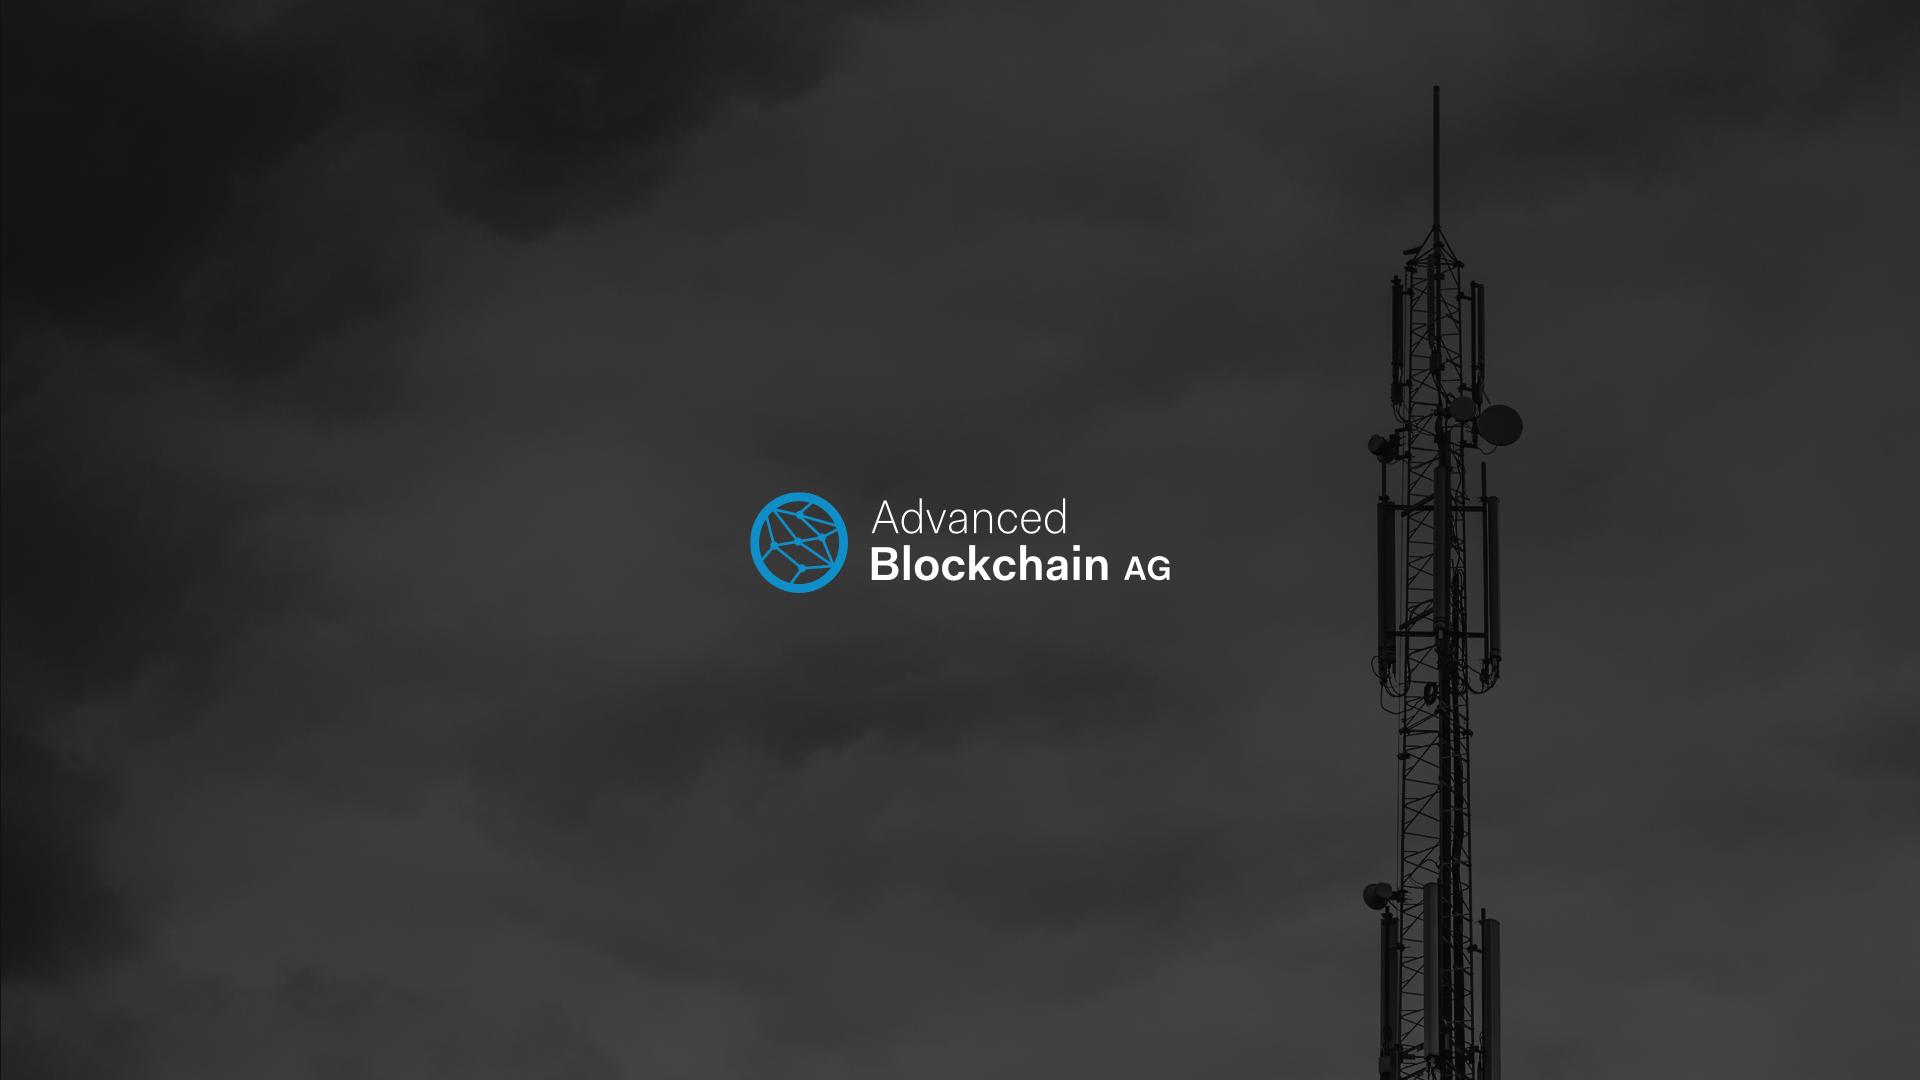 Advanced Blockchain AG signs letter of intent with German telecommunications provider